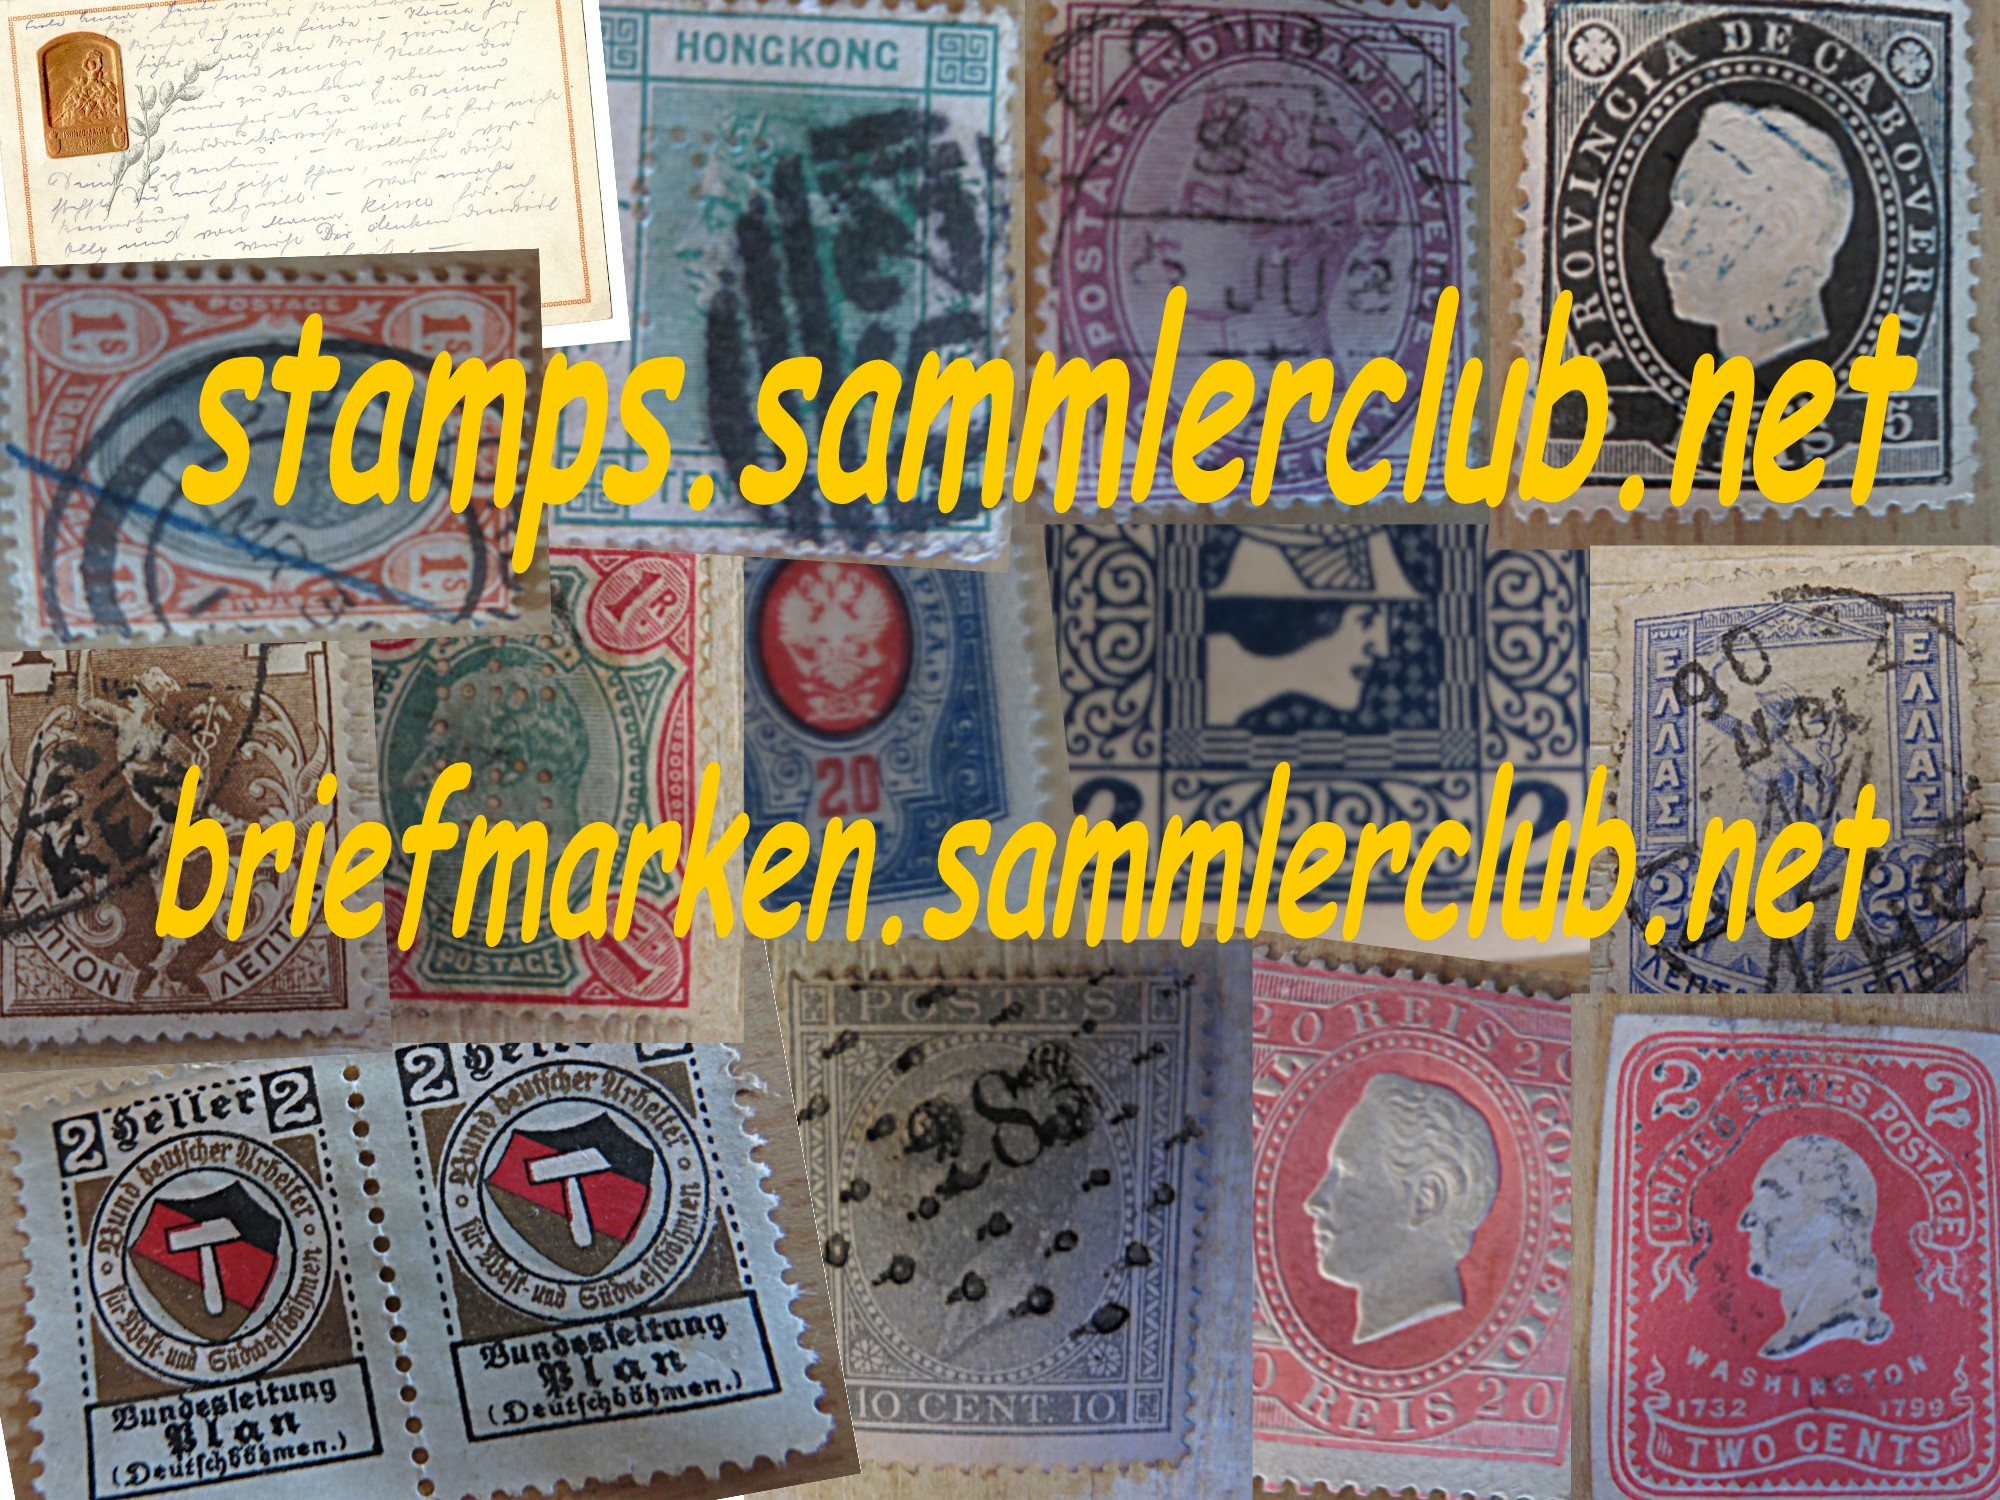 BRIEFMARKEN / STAMPS / SELLOS / FILATELIA / PHILATELIE SAMMLERCLUB